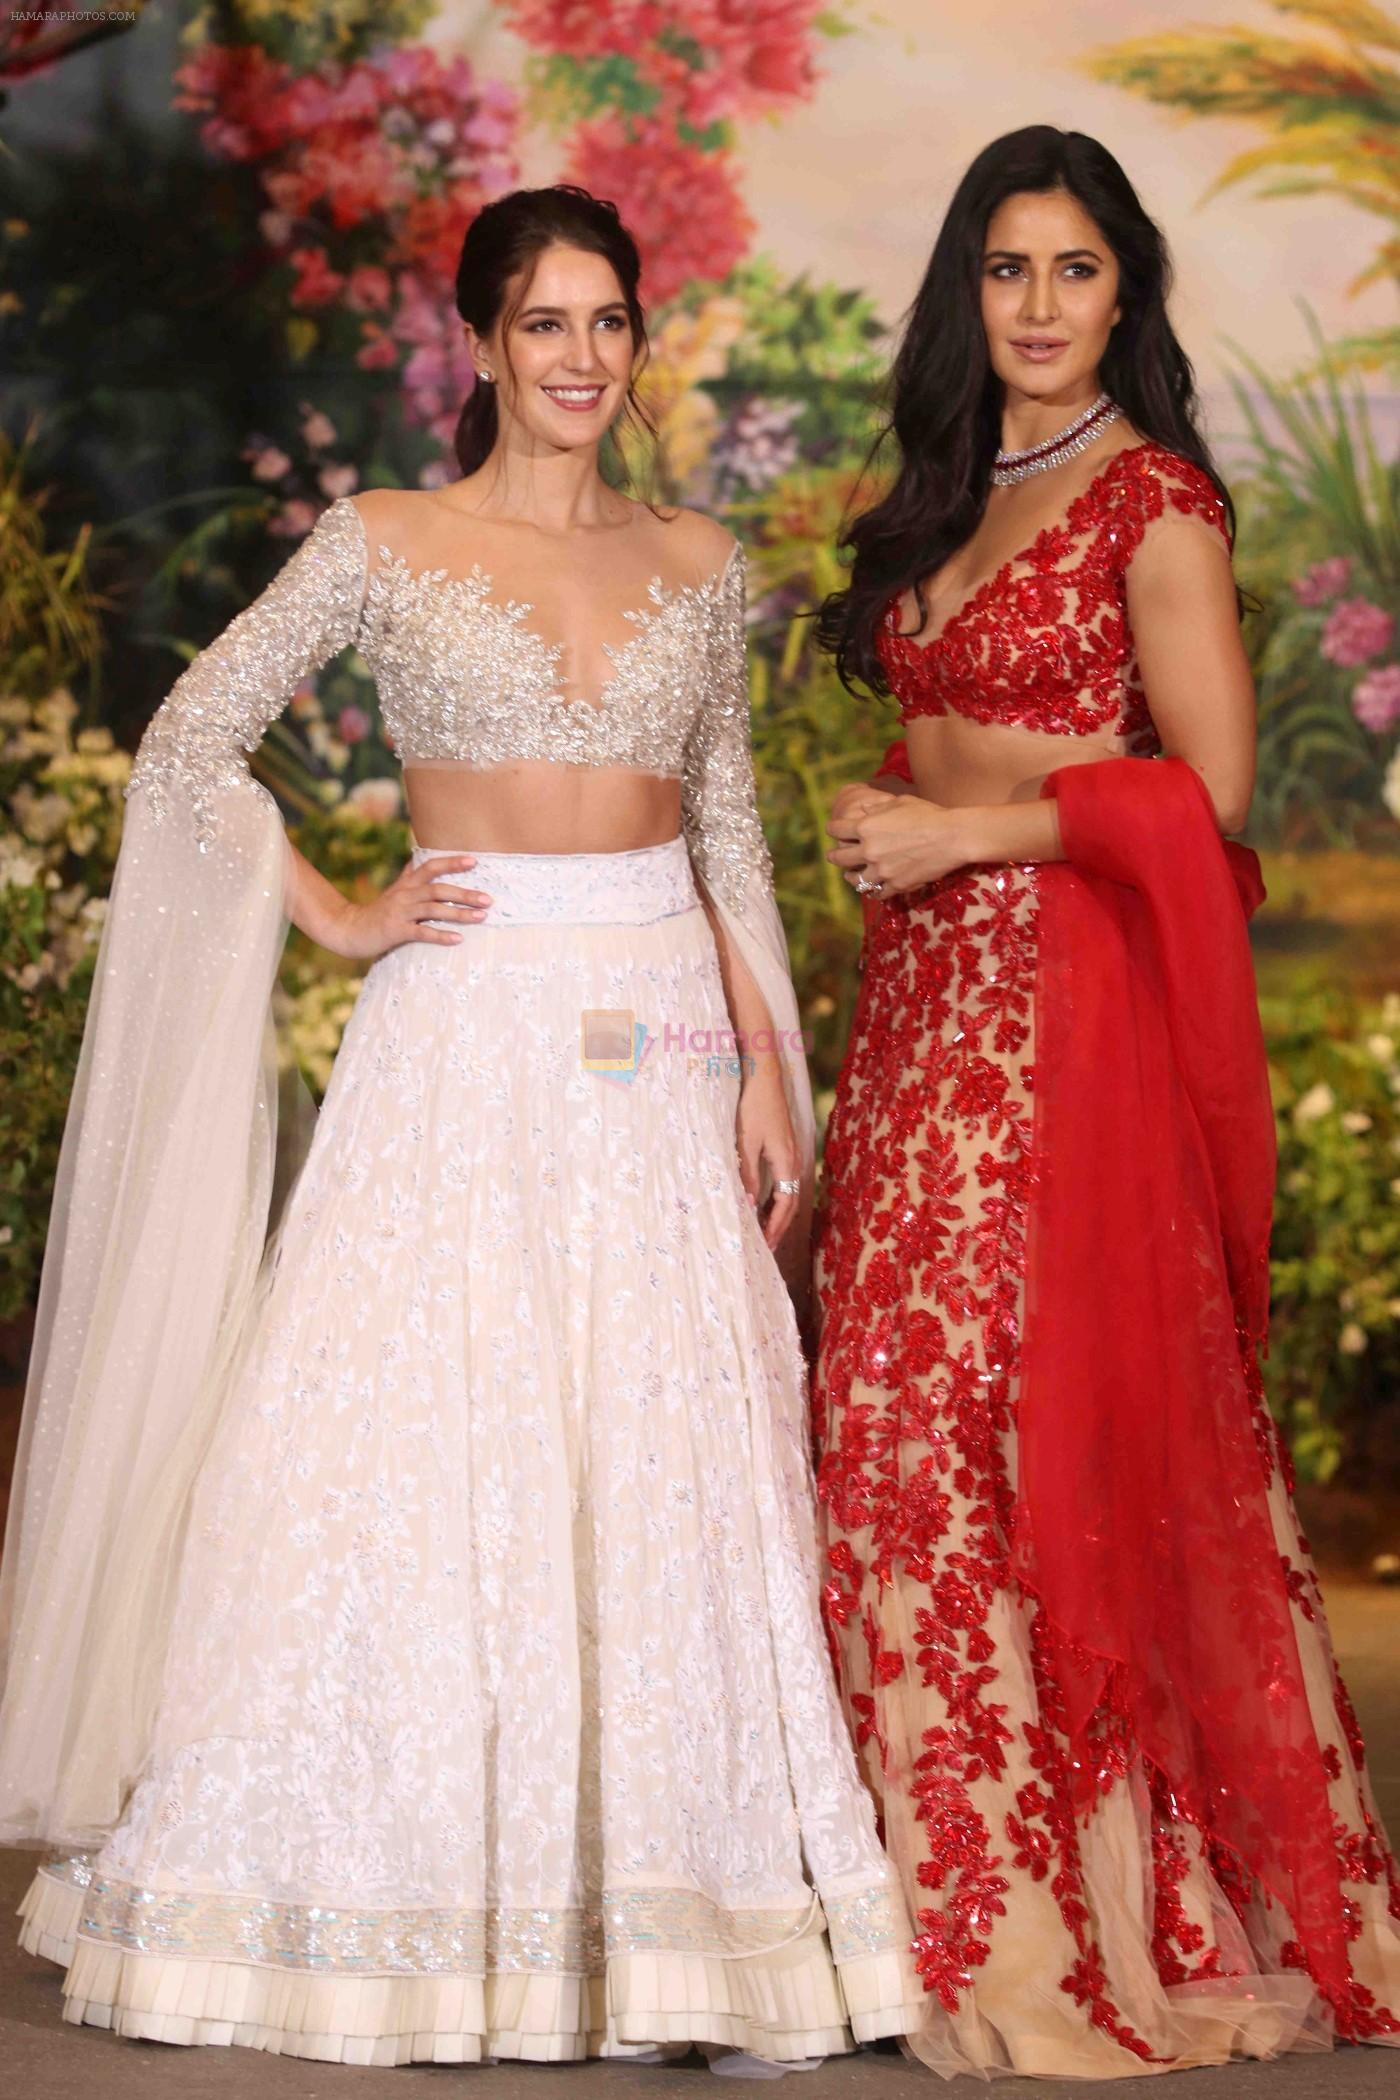 Katrina Kaif Isabella At Sonam Kapoor And Anand Ahuja S Wedding Reception On 8th May 2018